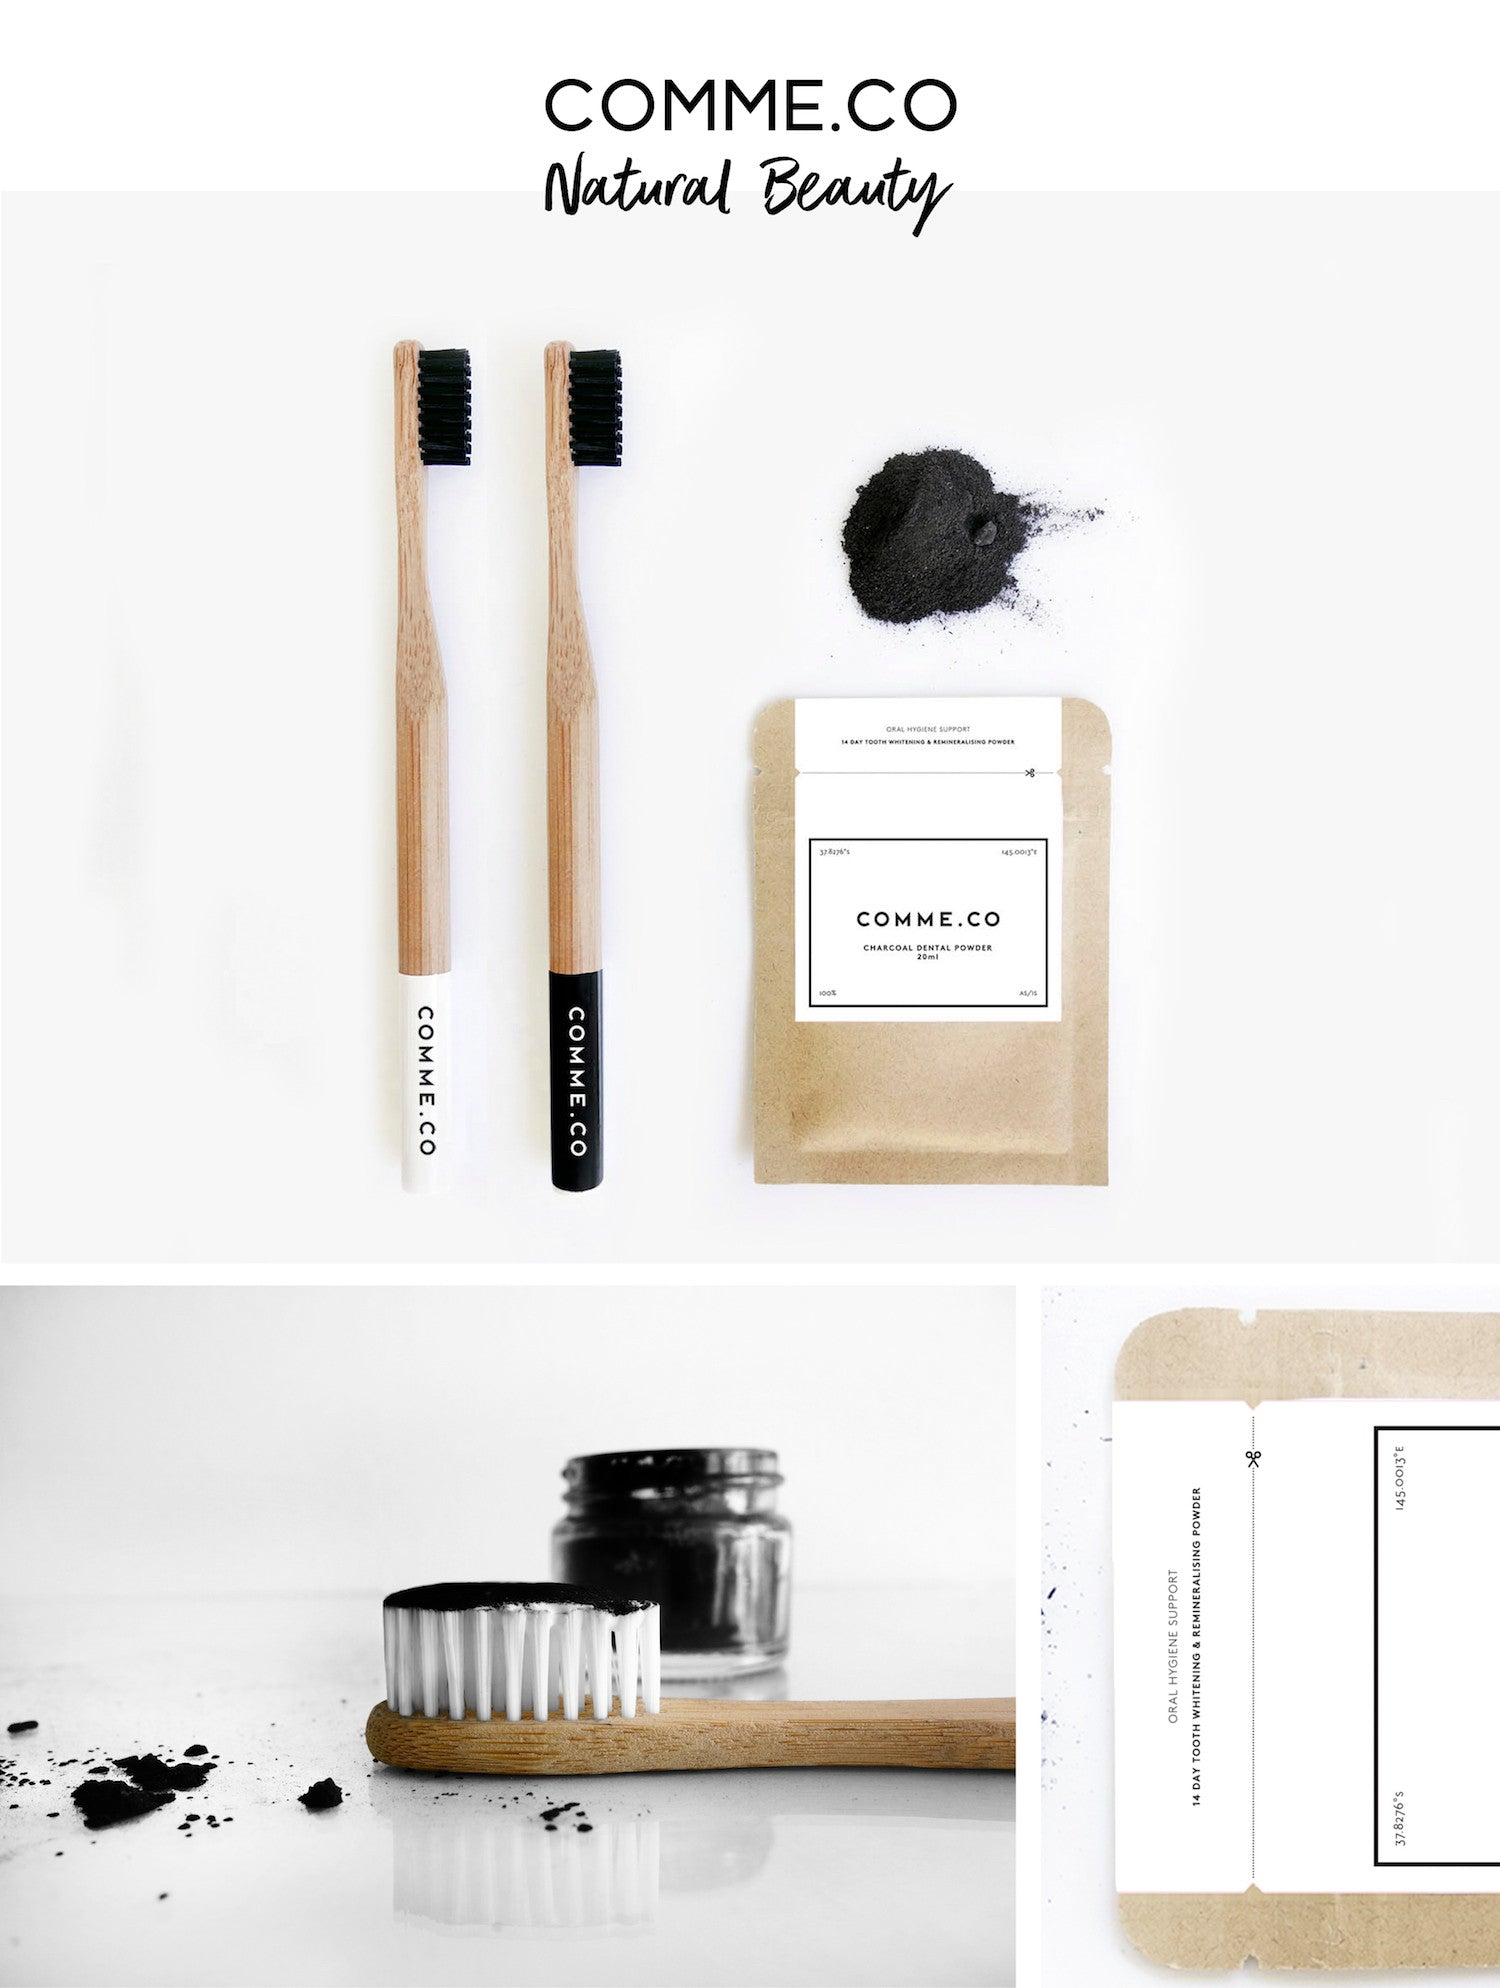 Comme.co - Charcoal products - Natural Products